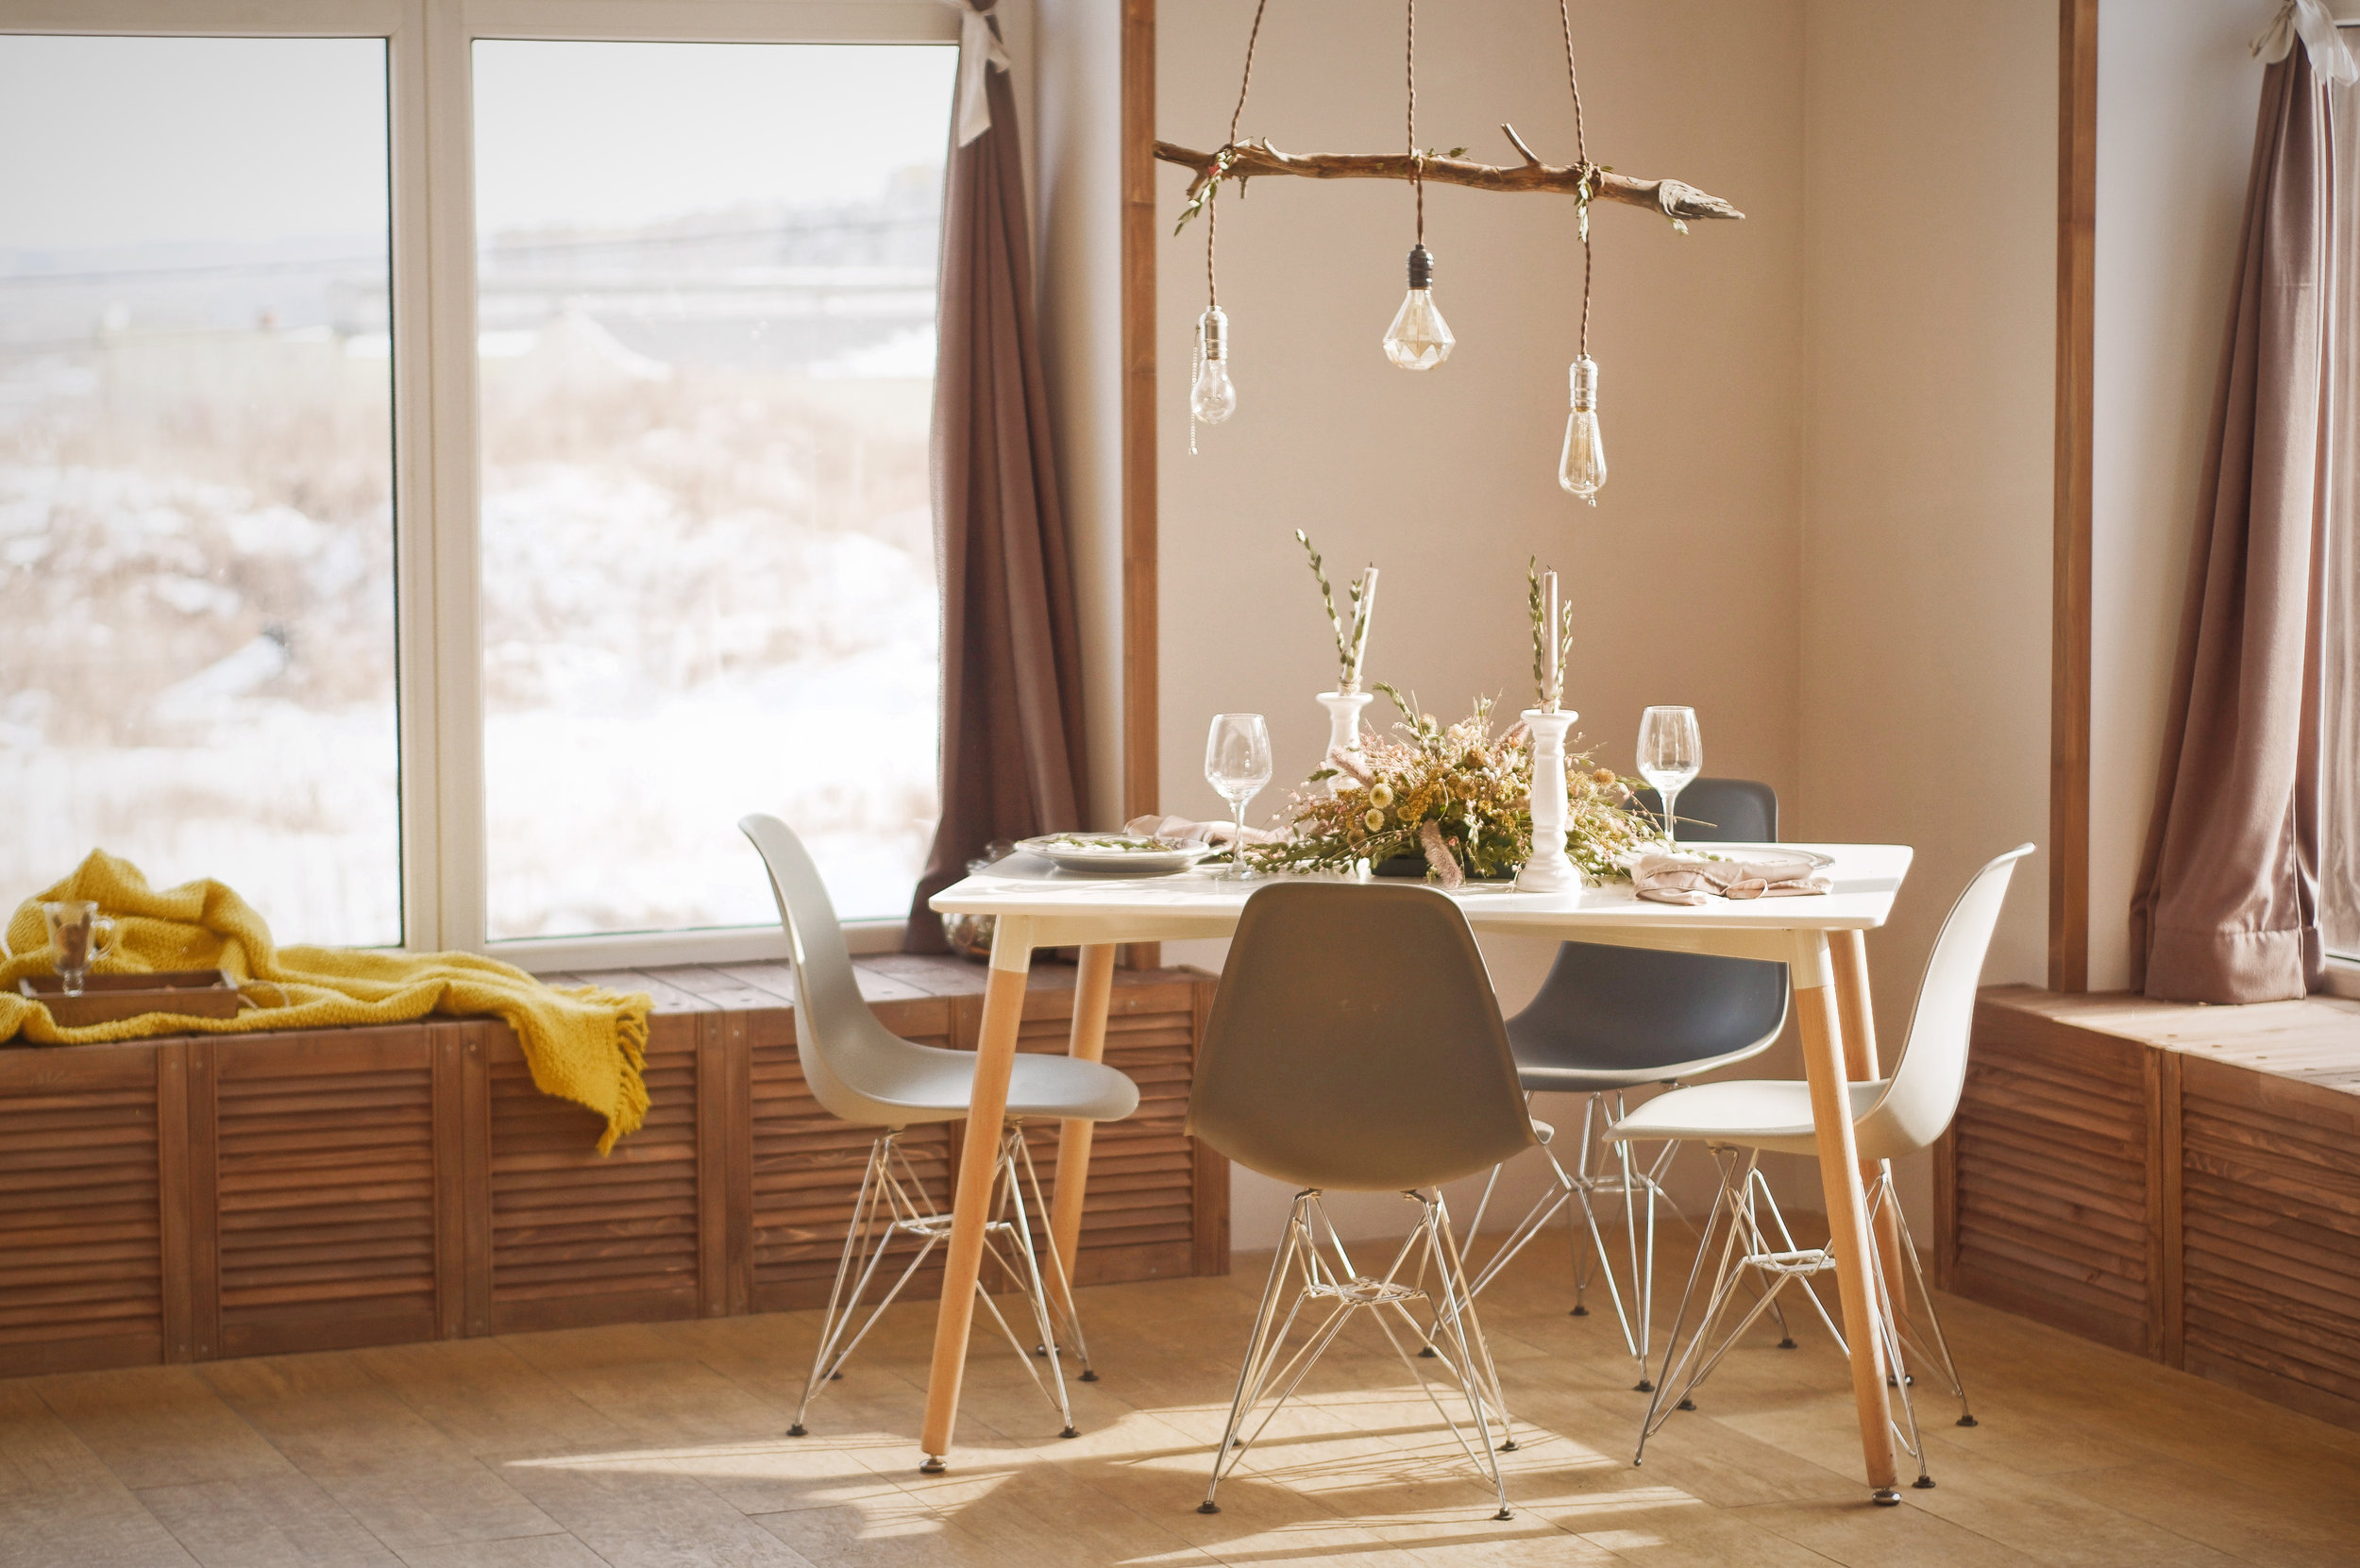 Decoration - Ideal in situations where staging draws in potential buyers in home sales, short term rental properties or simply in need of fresh start. We specialise in turning houses into homes.